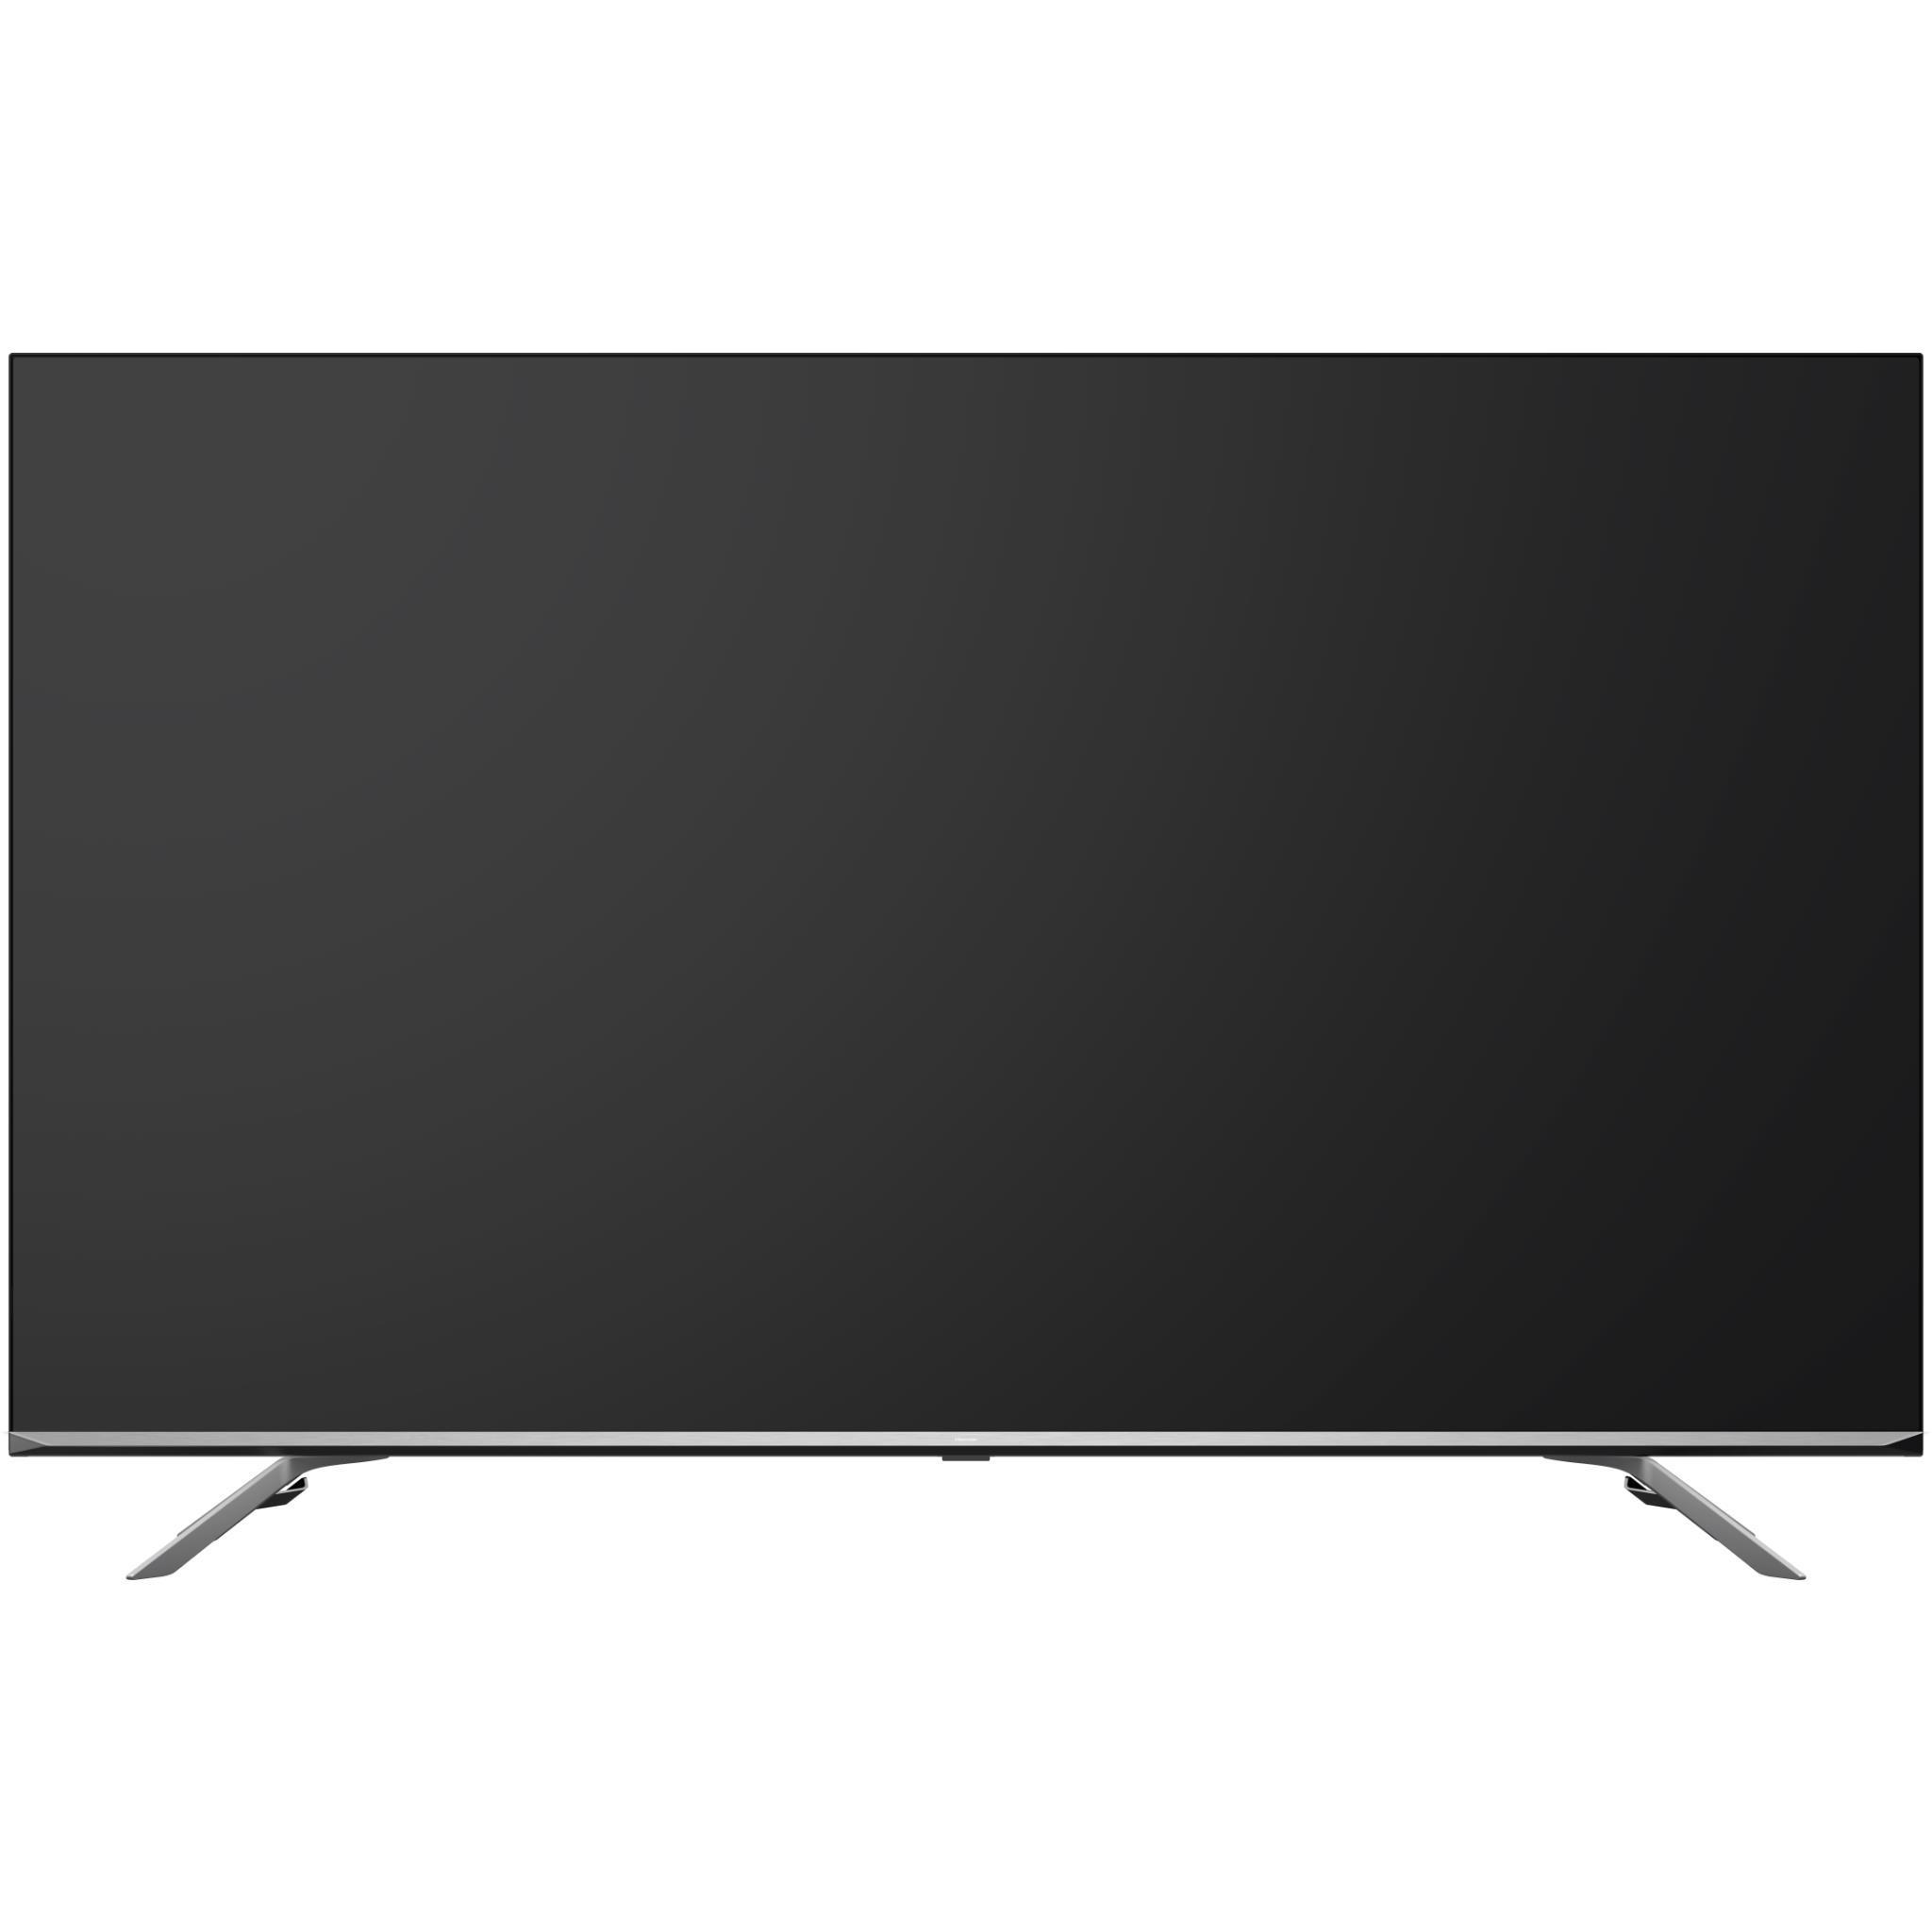 Hisense 65Q7 65″ 4K Ultra HD LED TV